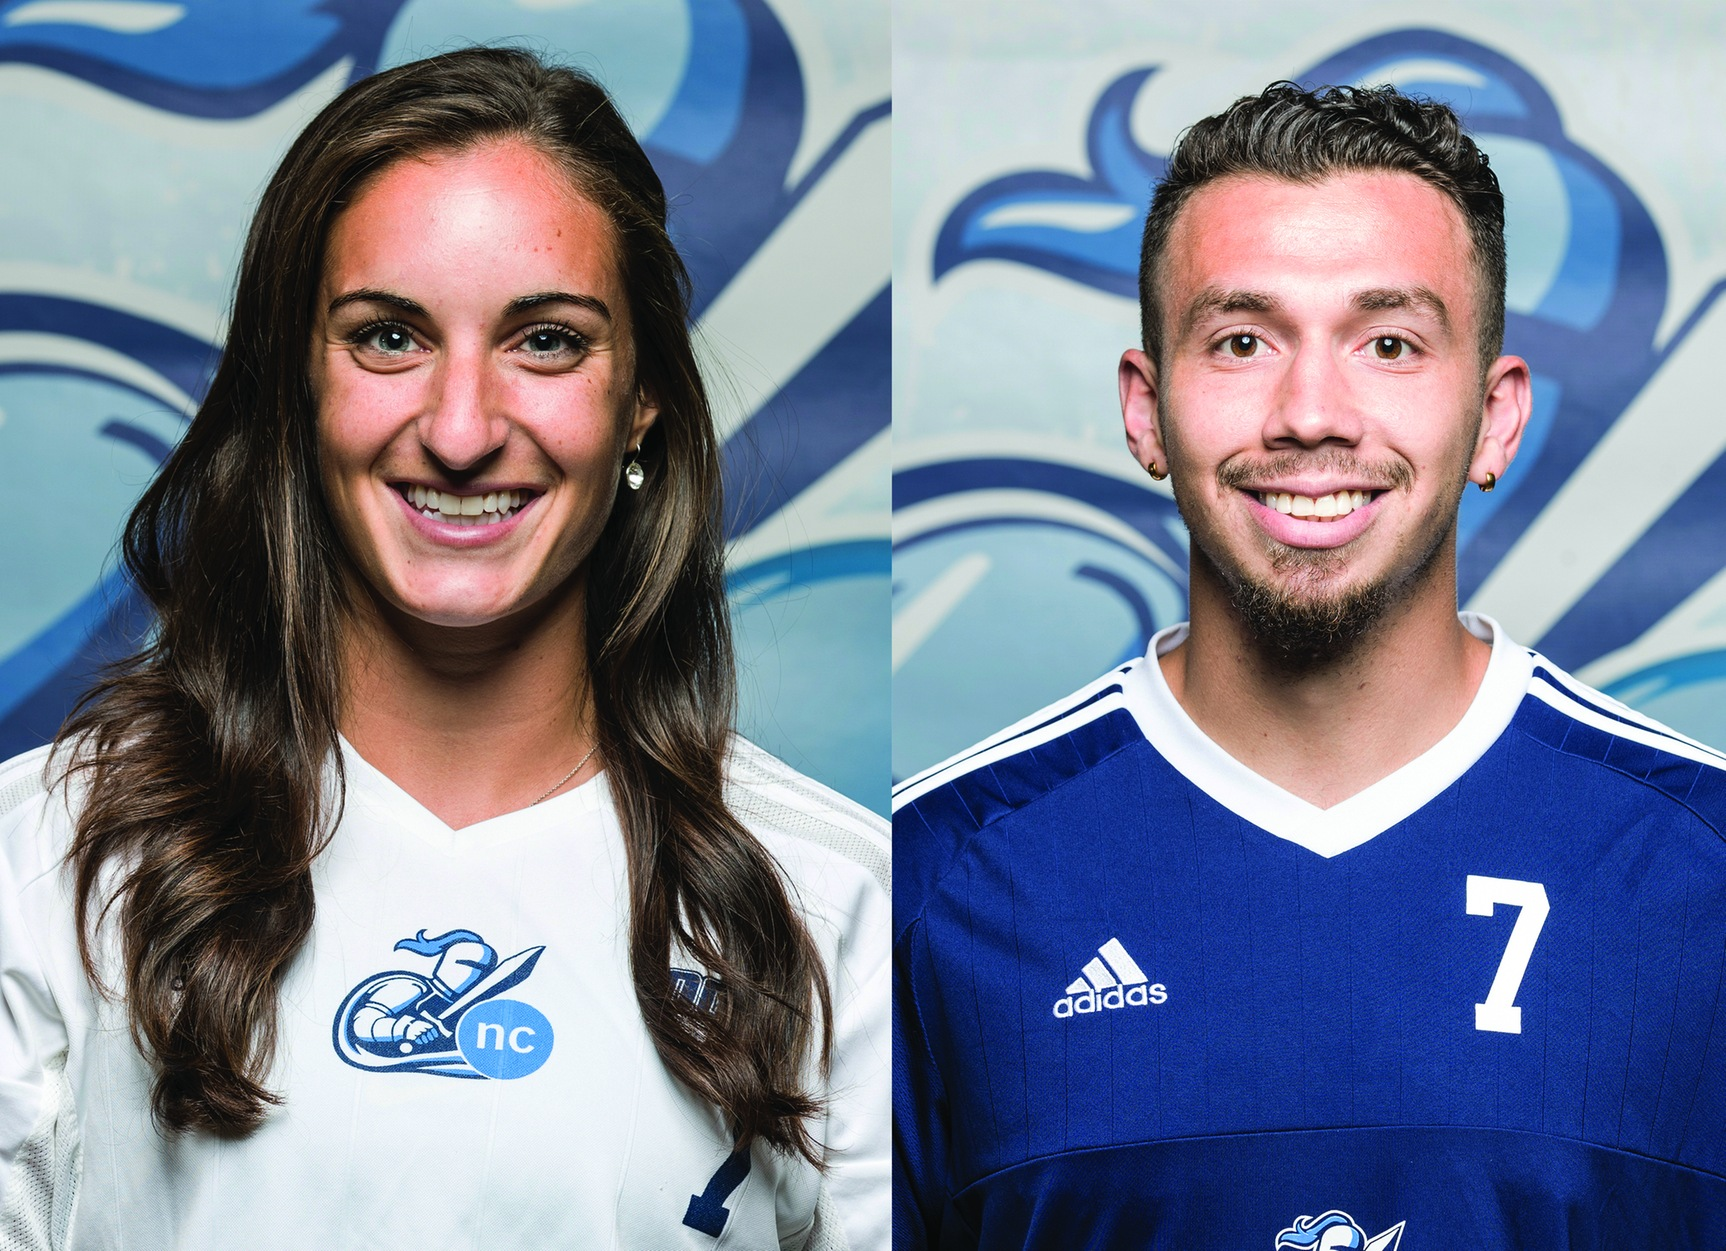 NEWS: Amores and Bruzzese named athletes of the week